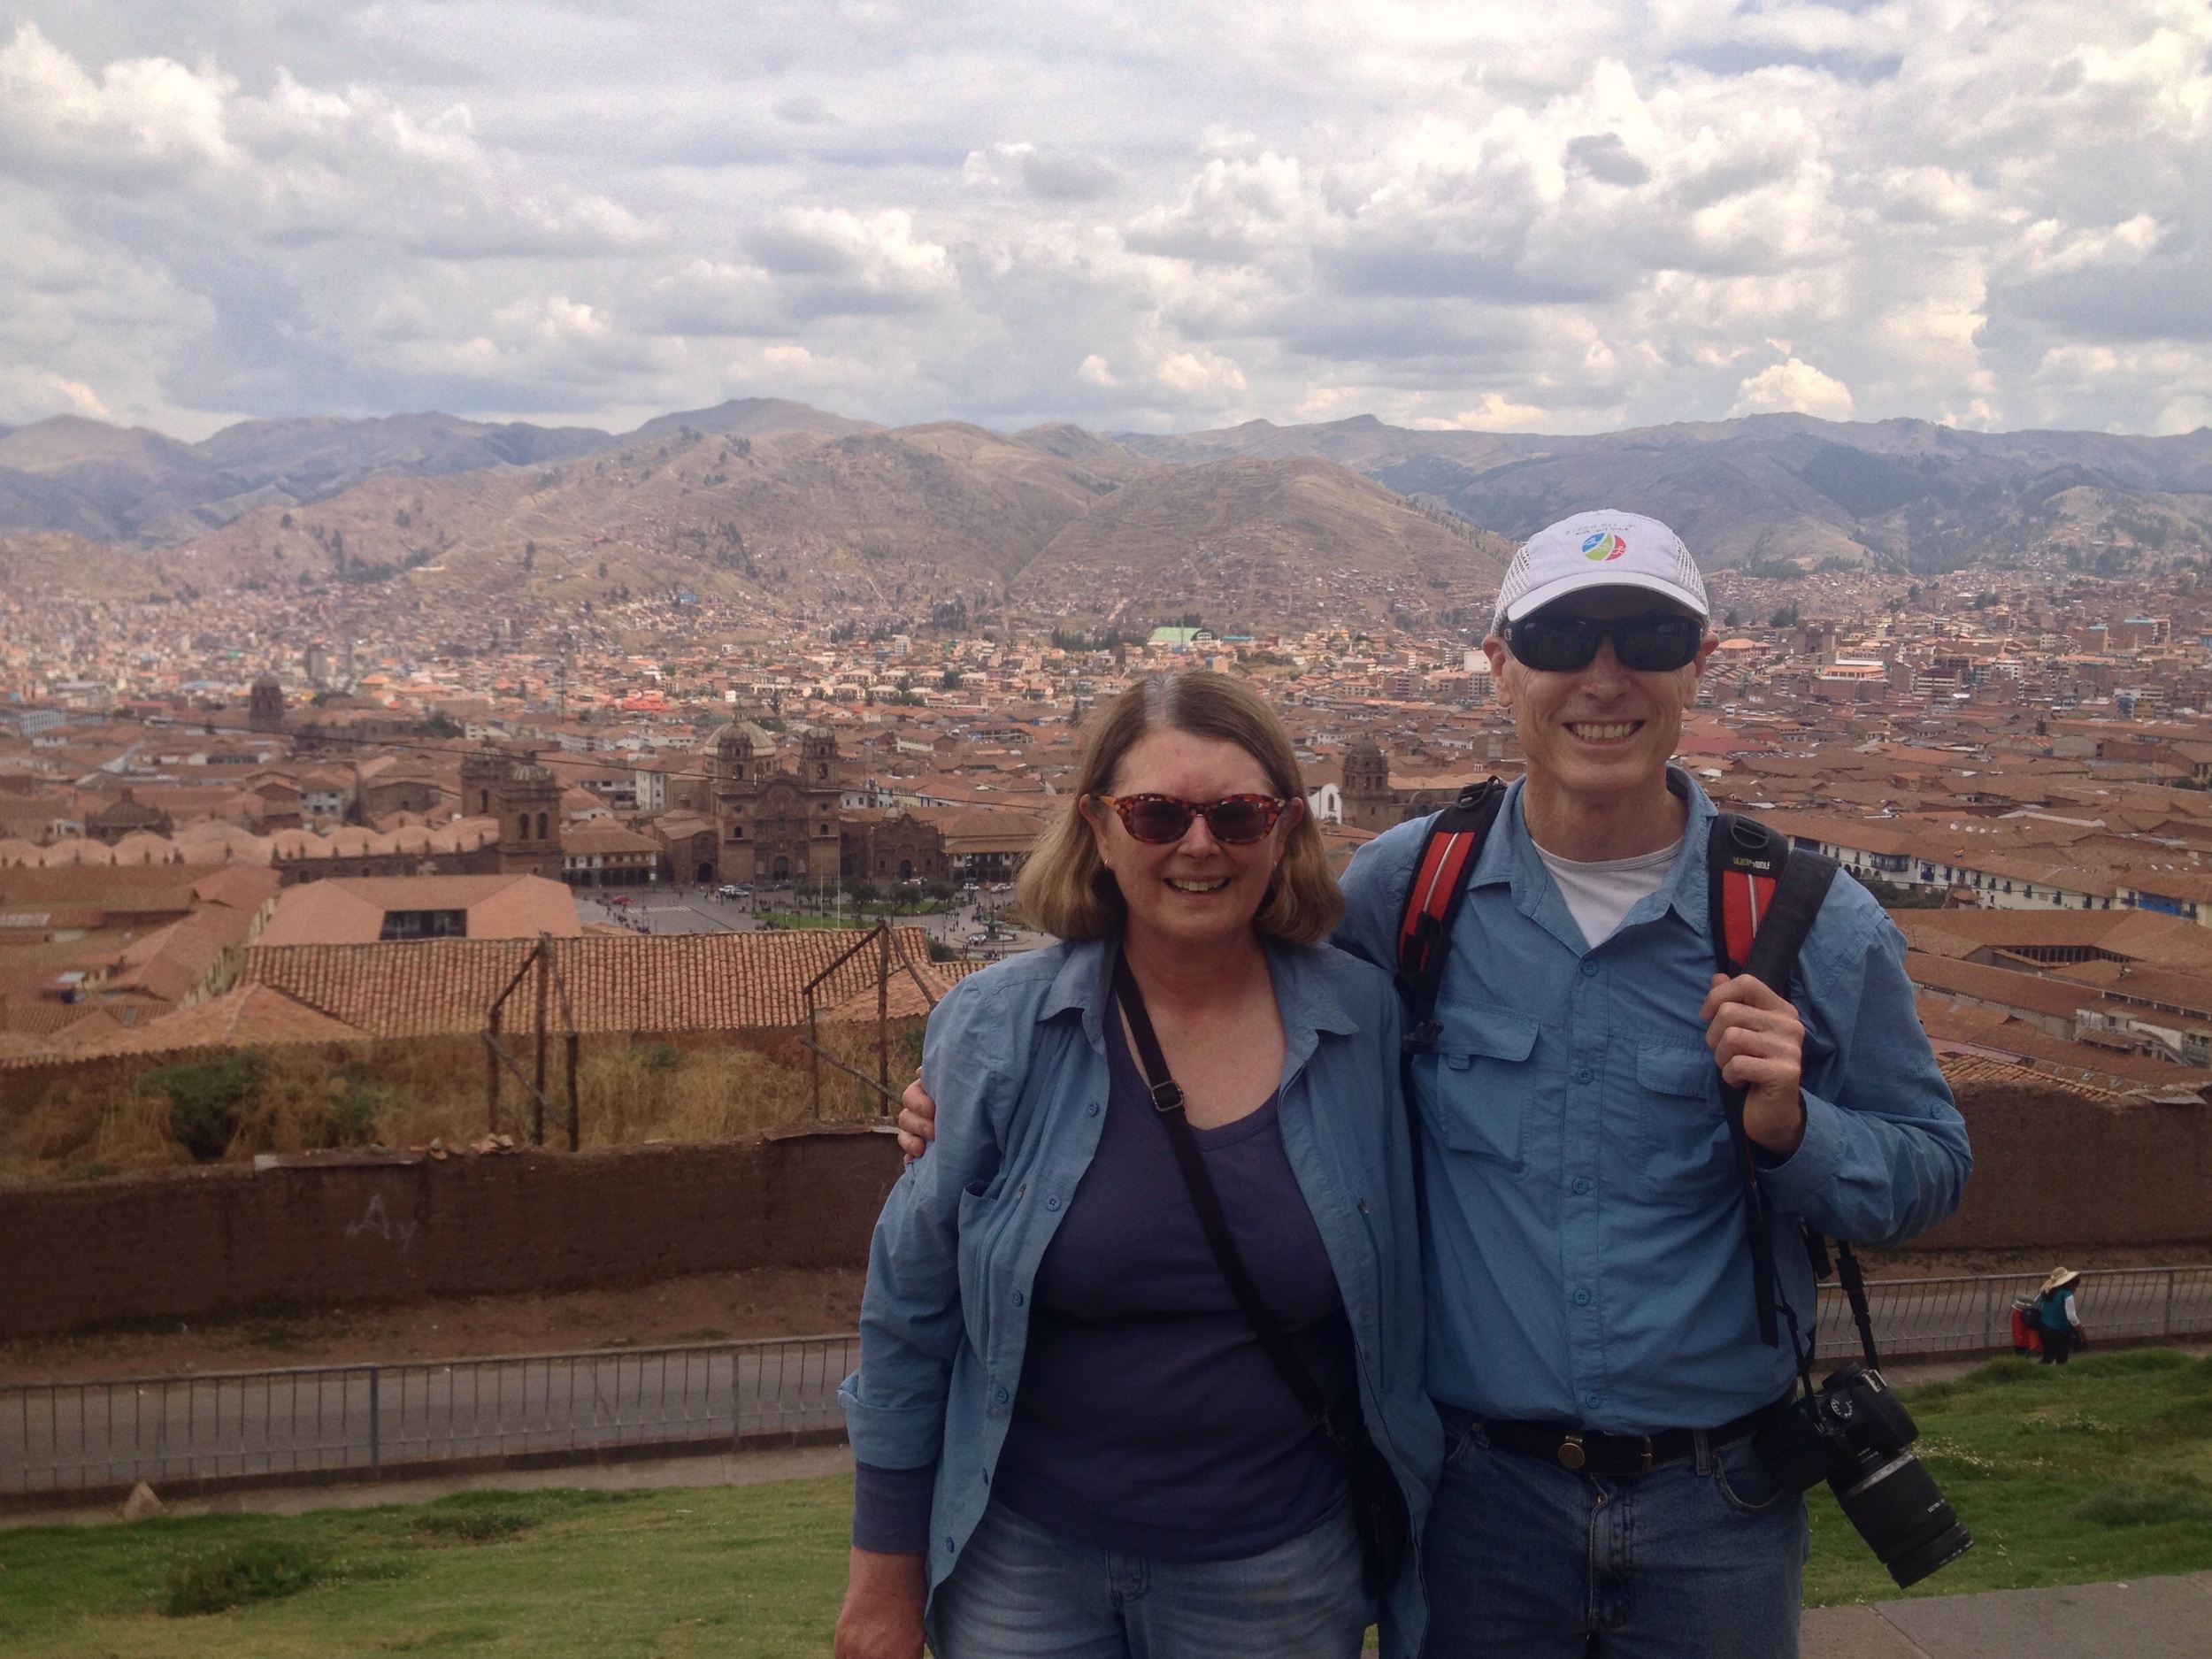 Karen and Paul - city views after a steep hike